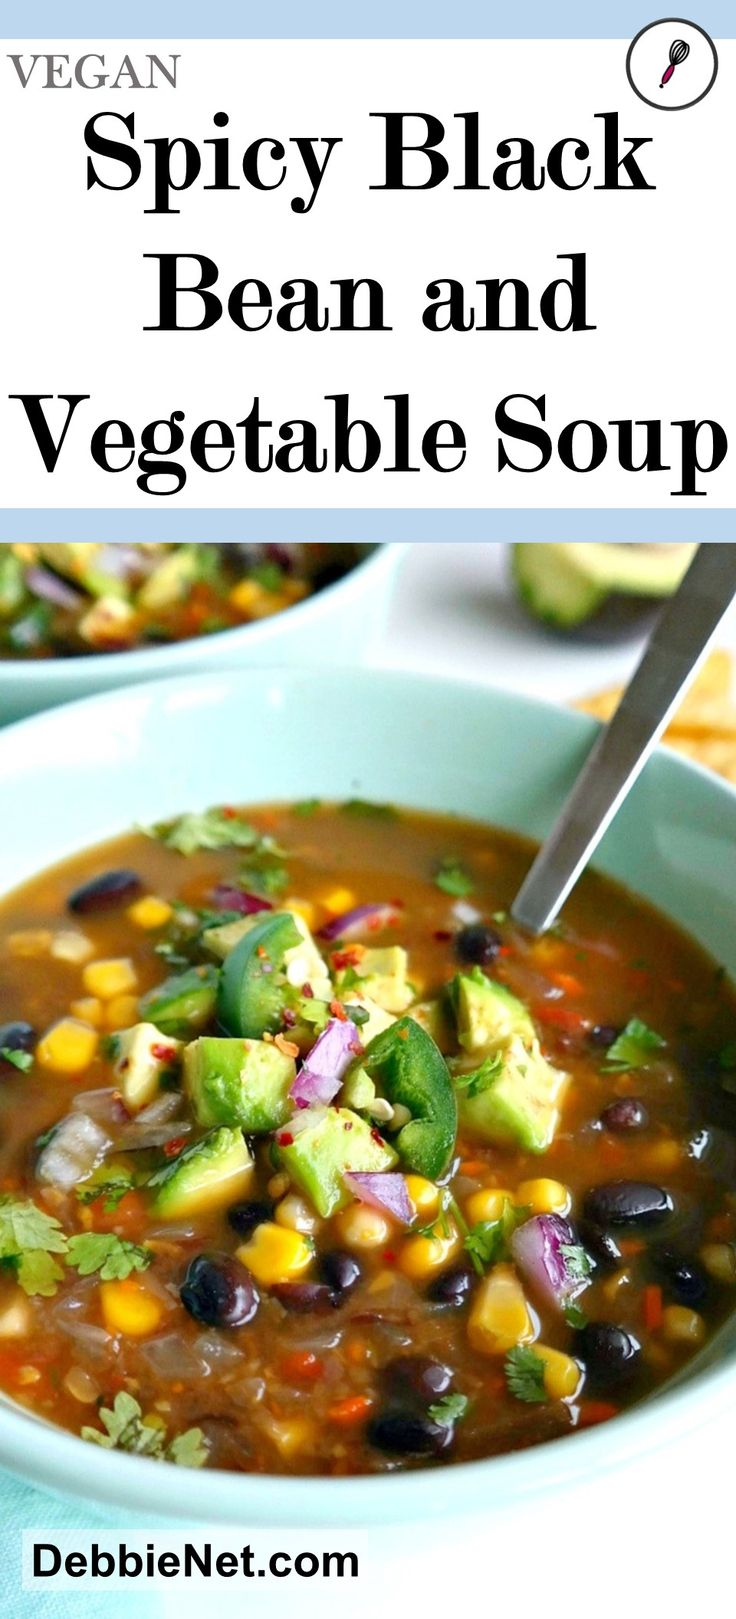 This delicious black bean and vegetable soup will have everyone coming back for seconds. GF, vegan, vegetarian. | DebbieNet.com